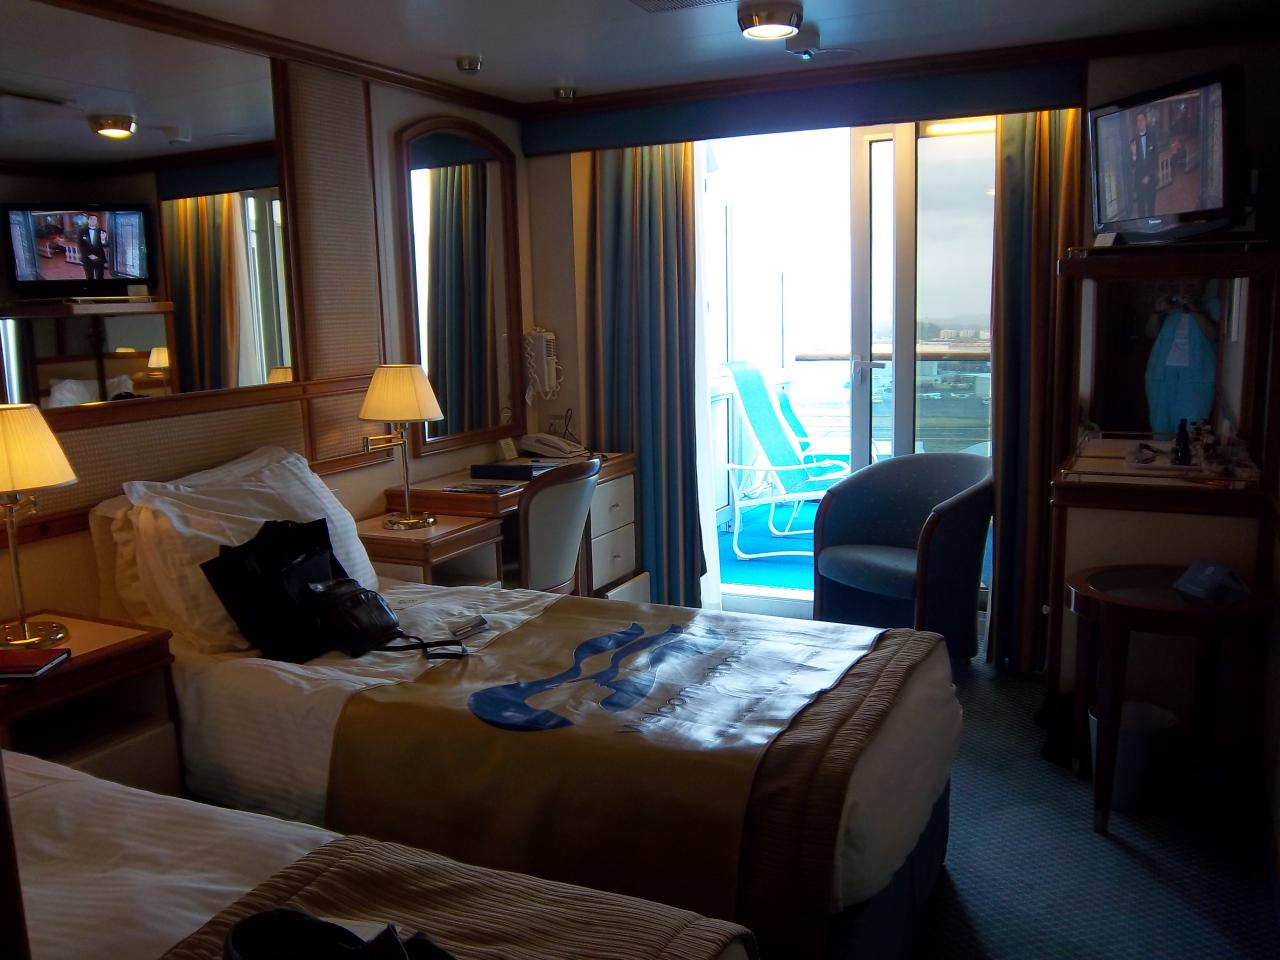 Princess Caribbean Princess Cruise Review For Cabin C723